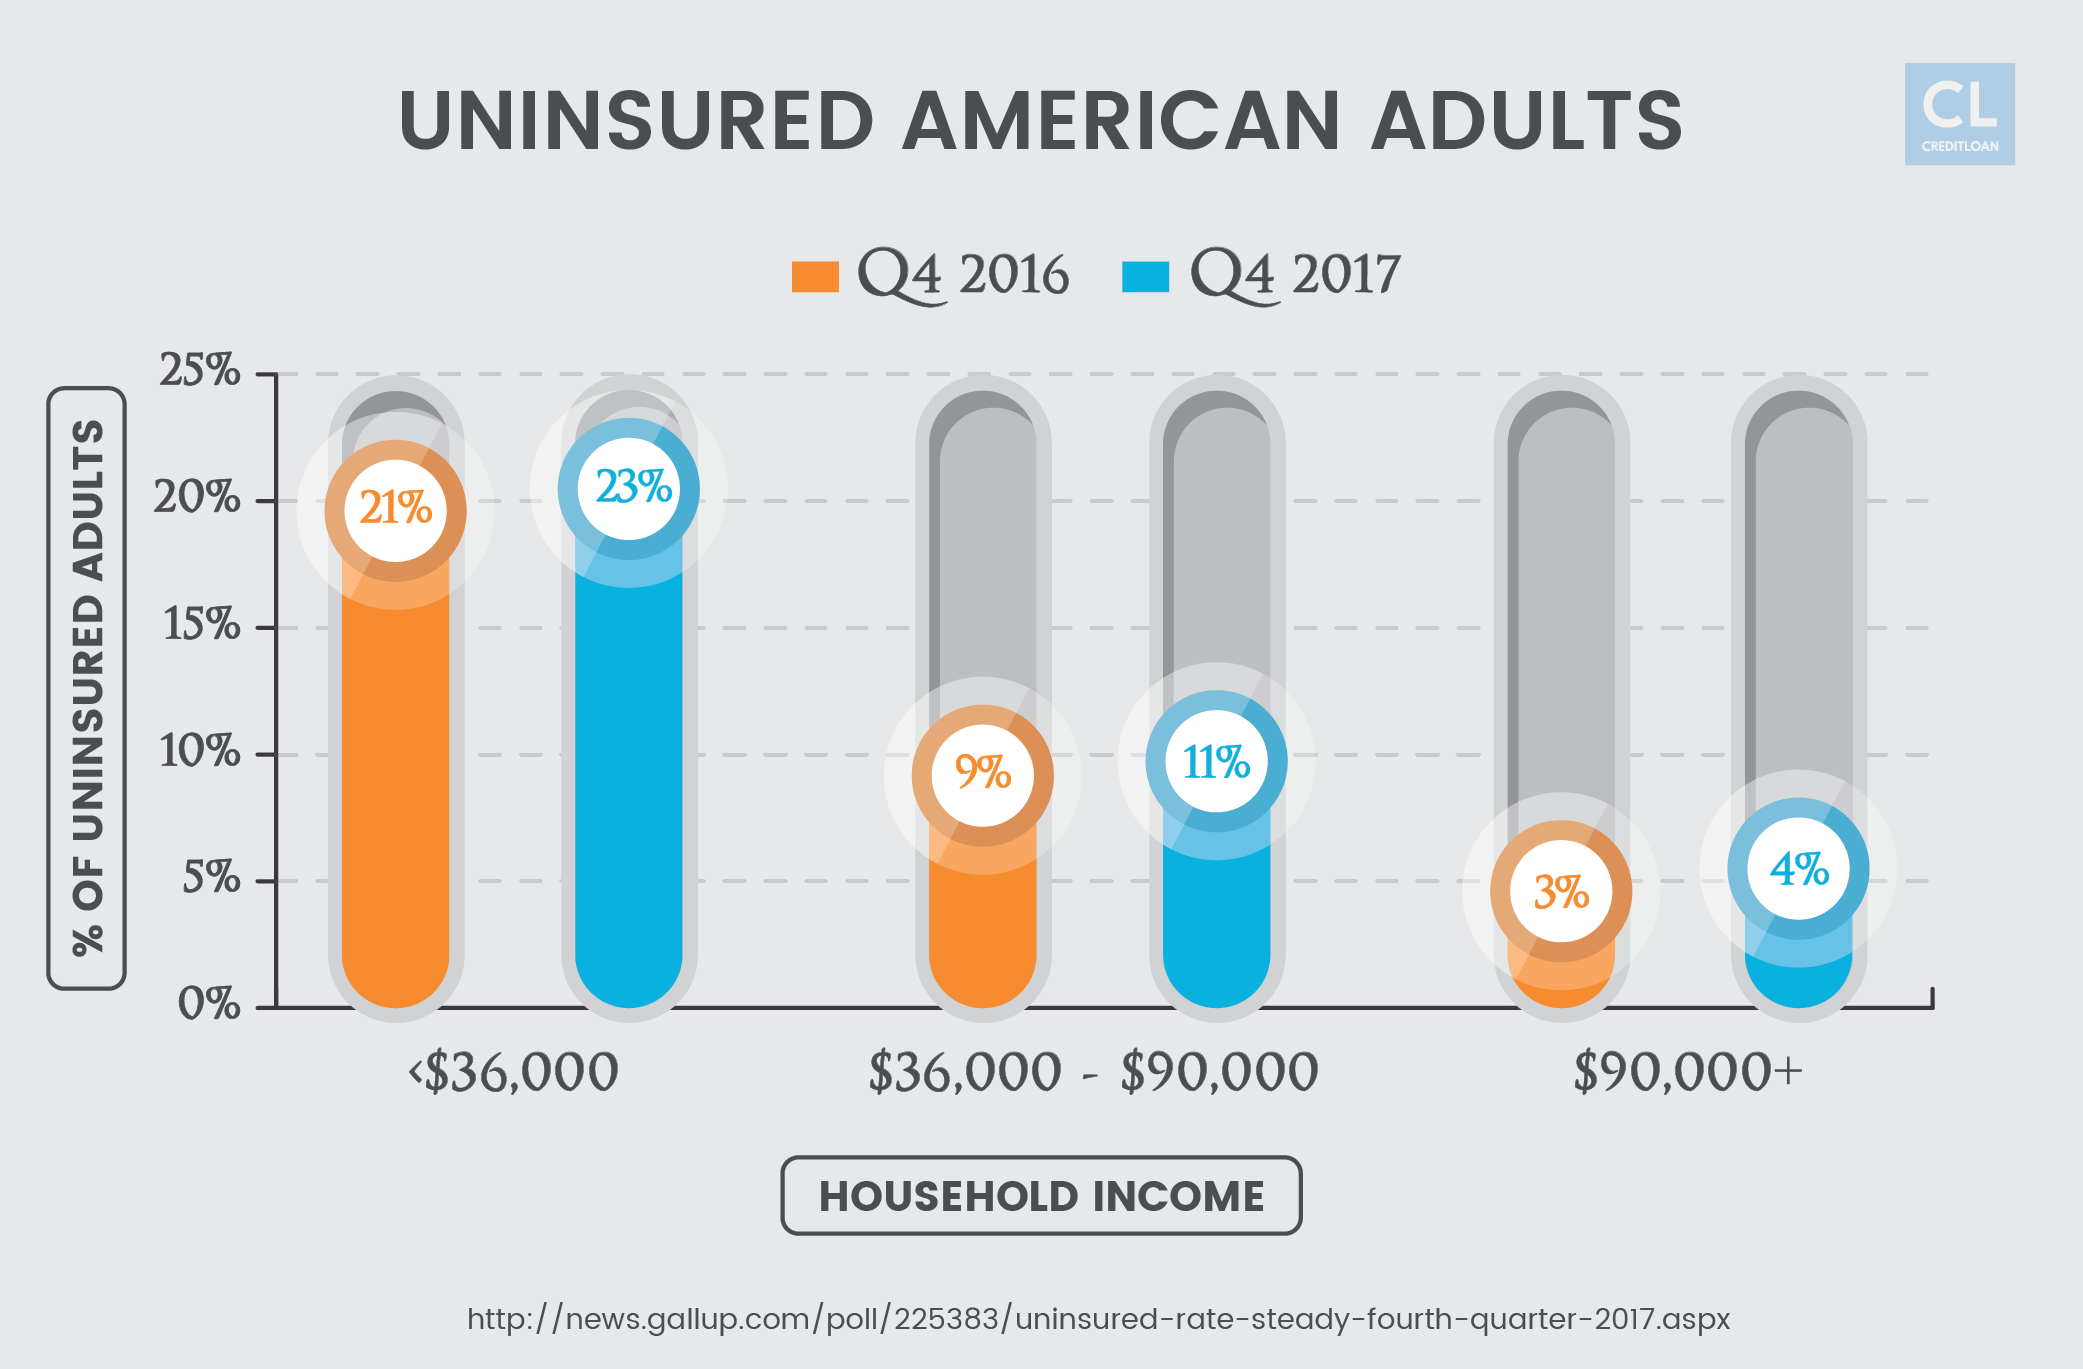 Percentage of Uninsured U.S. Adults